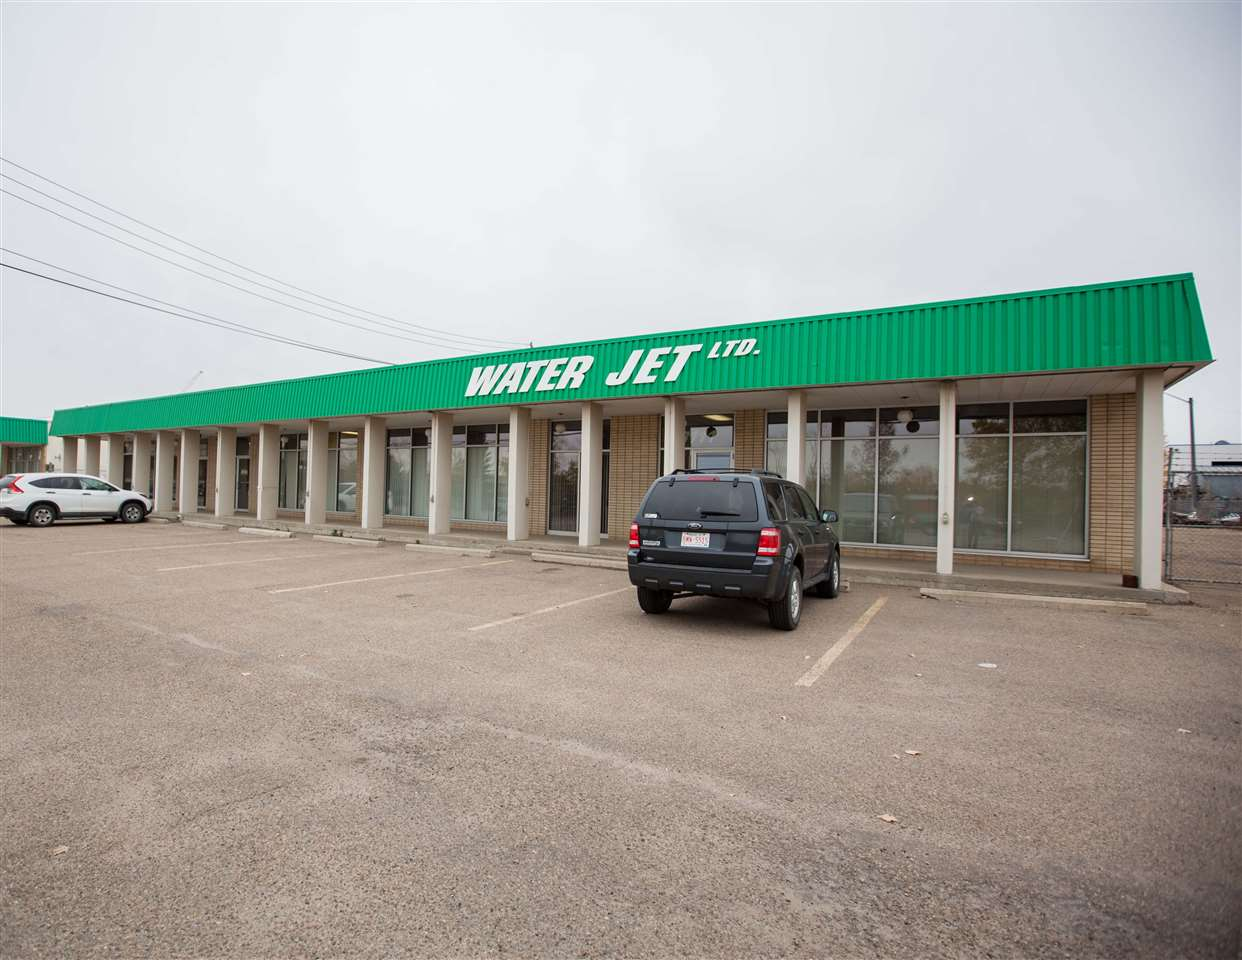 Main Photo: 8111 WAGNER Road in Edmonton: Zone 41 Industrial for sale : MLS® # E4085879